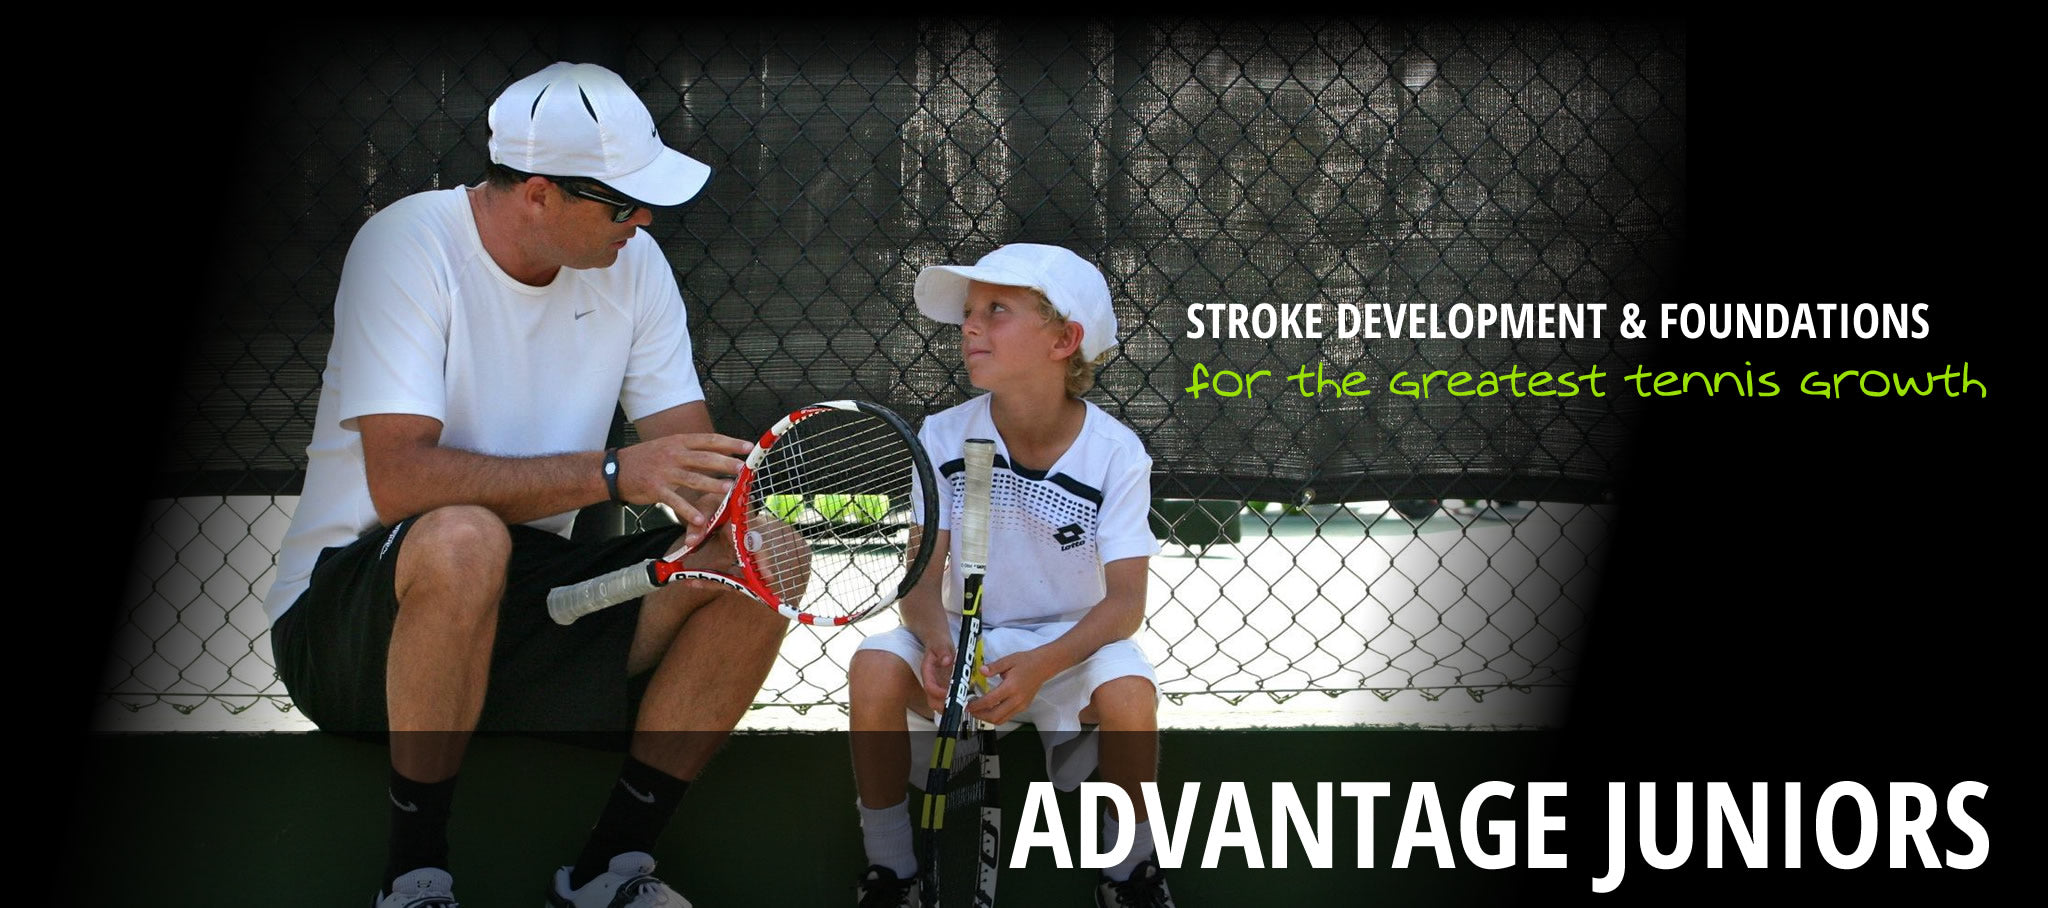 Advantage Juniors Program